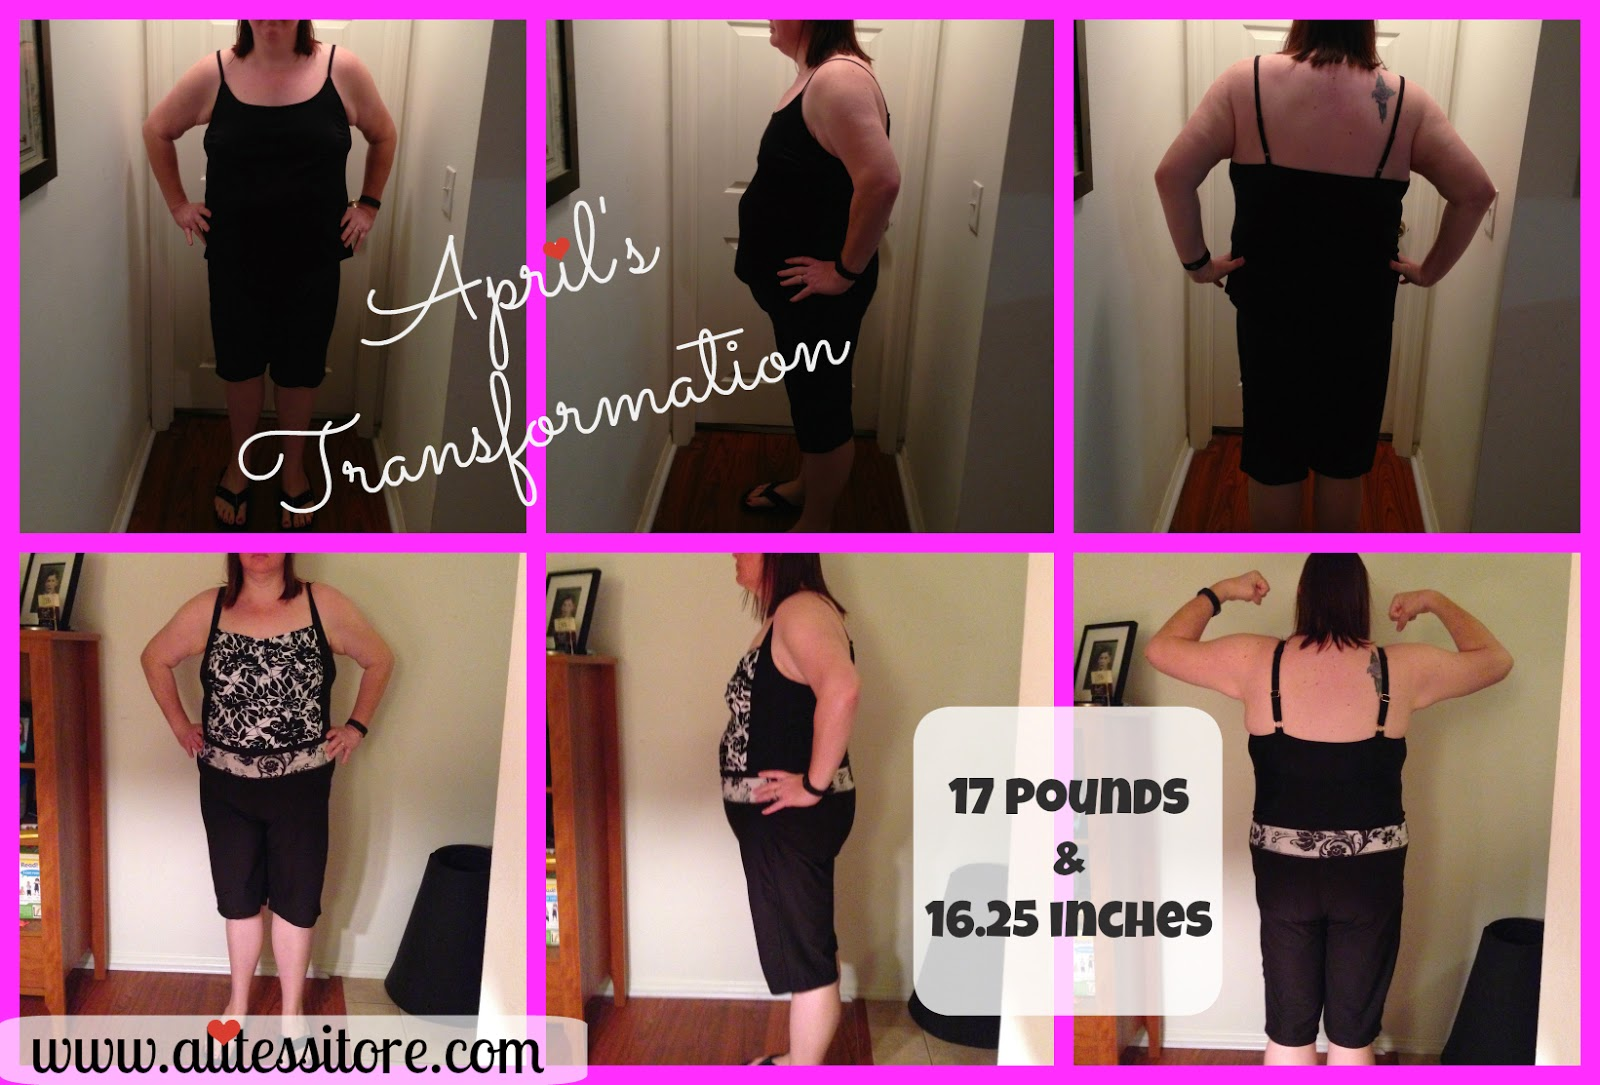 http://www.alitessitore.com/2015/04/challenger-transformation-story-april.html